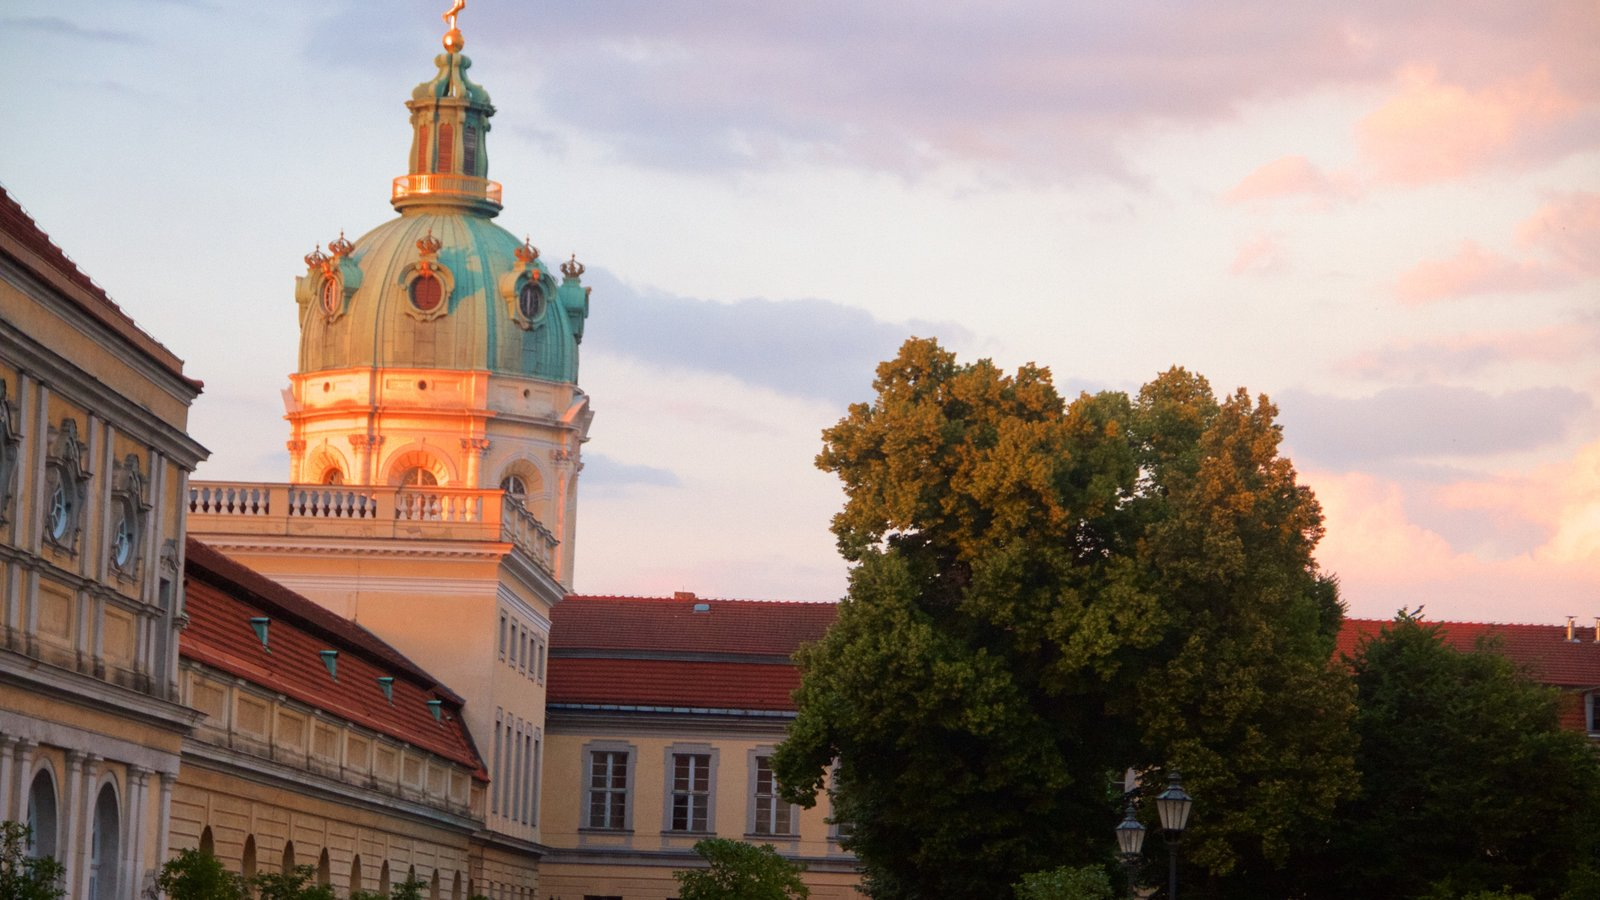 Schloss Charlottenburg which includes a sunset, heritage elements and heritage architecture